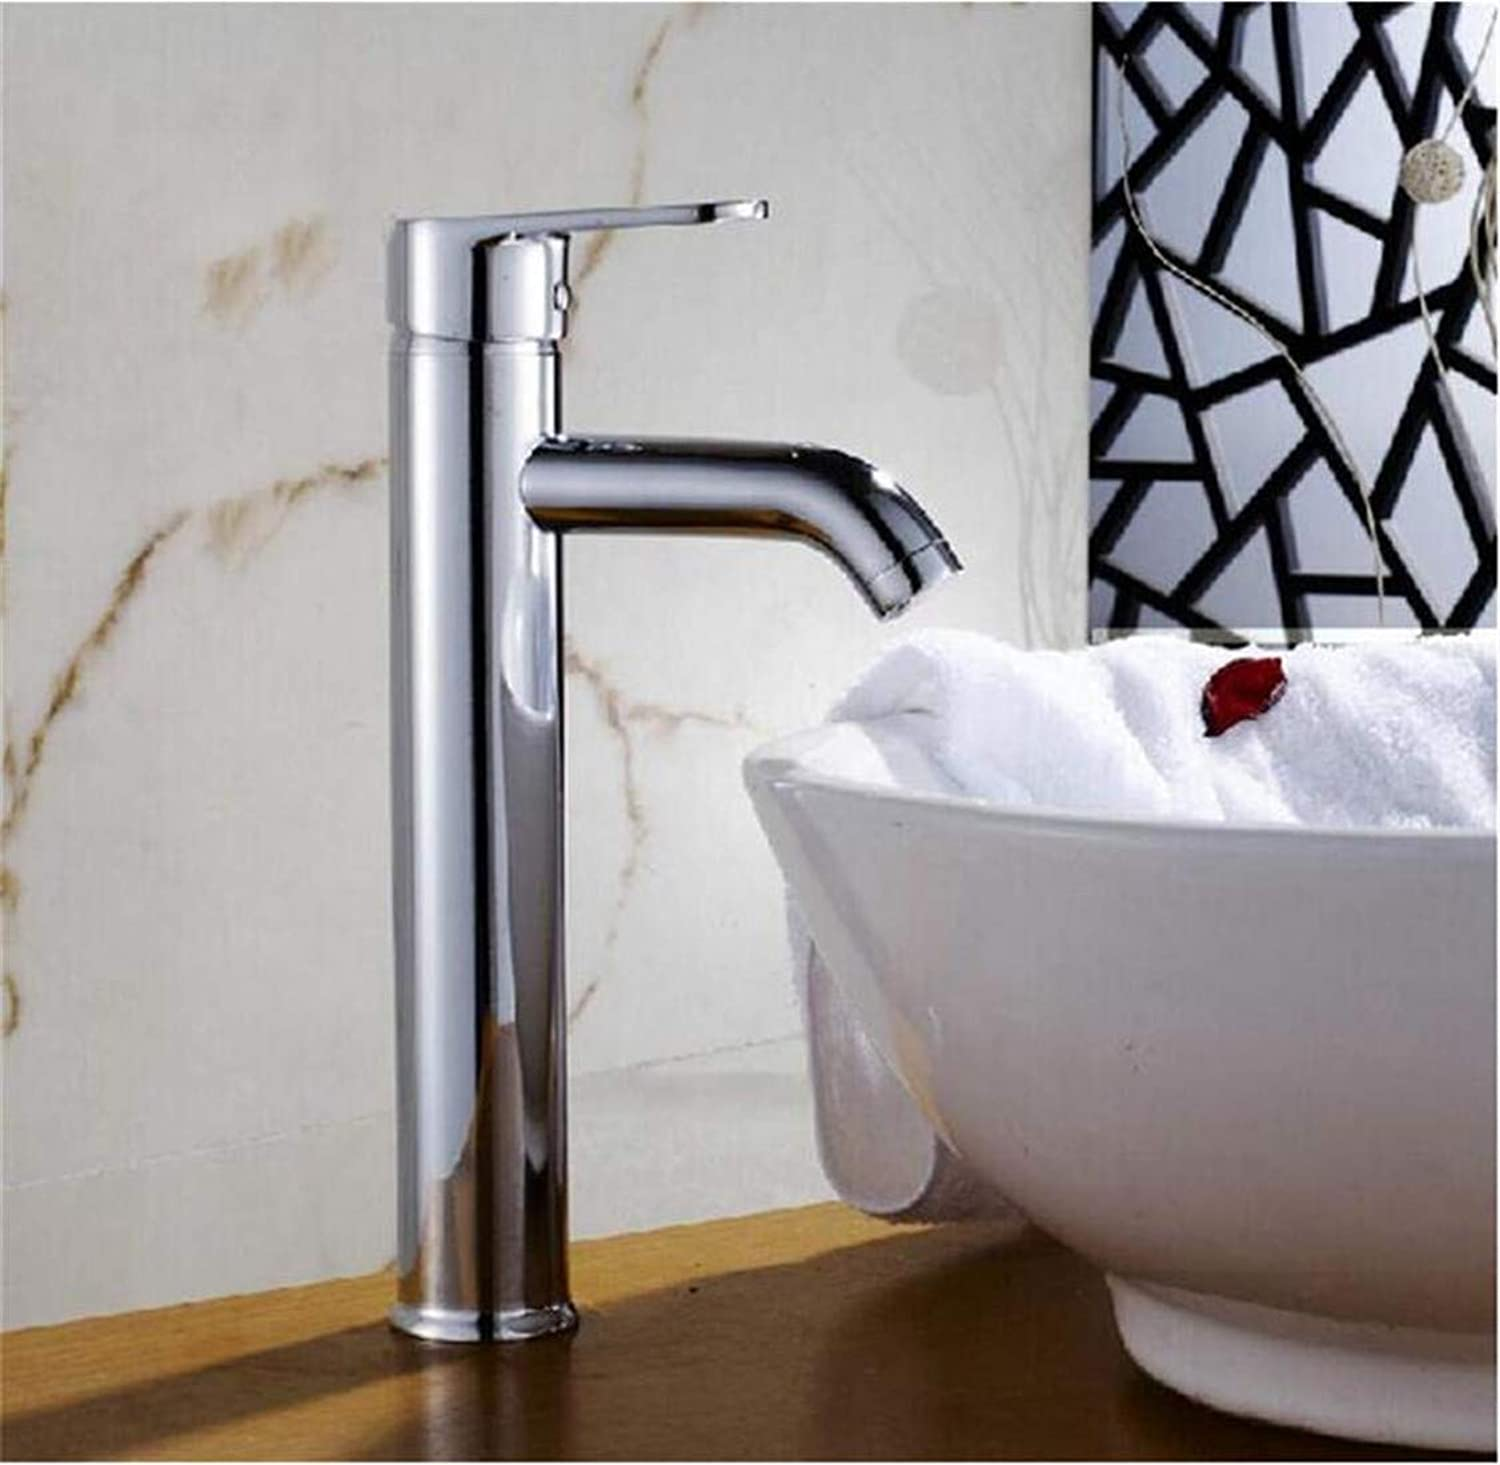 Vintage Brass 360 Degree redation Chrome Bathroom Sink Faucet Vessel Tap Washbasin Cold and Hot Water Faucet